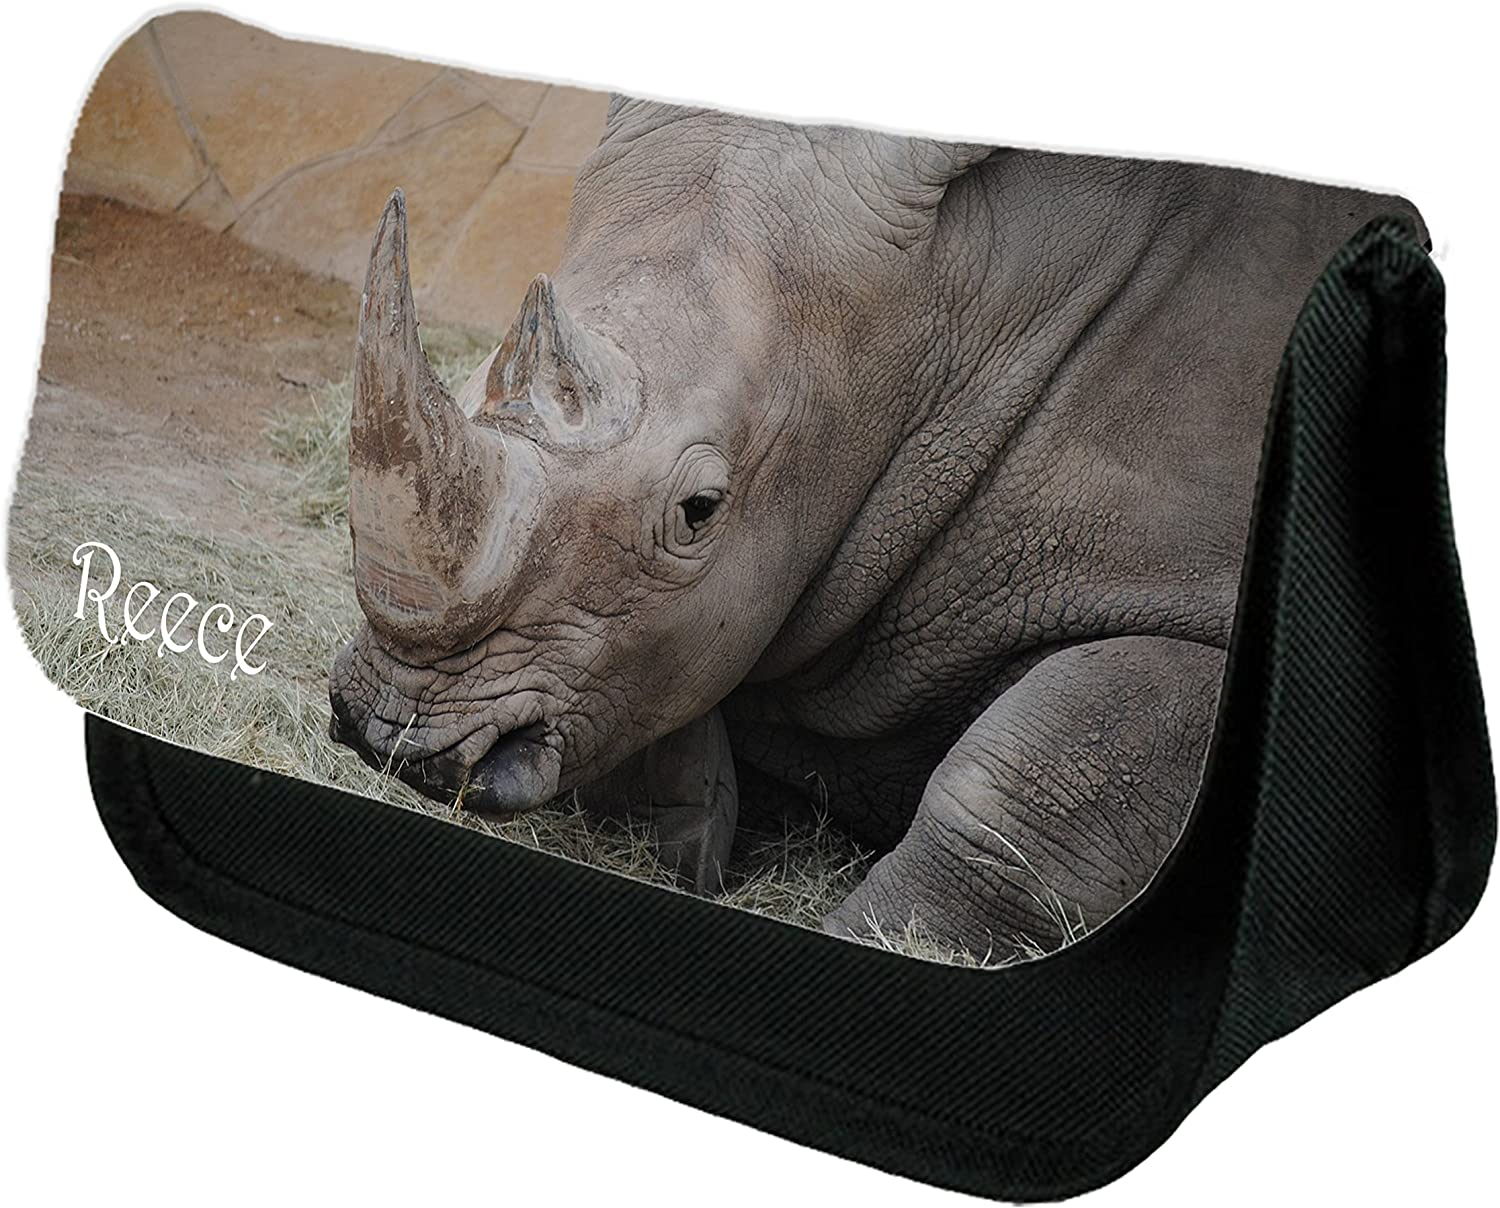 Inspired Creative Design Personalised Rhino, Stationary case, Cosmetic bag, Pencil Case. Personalised